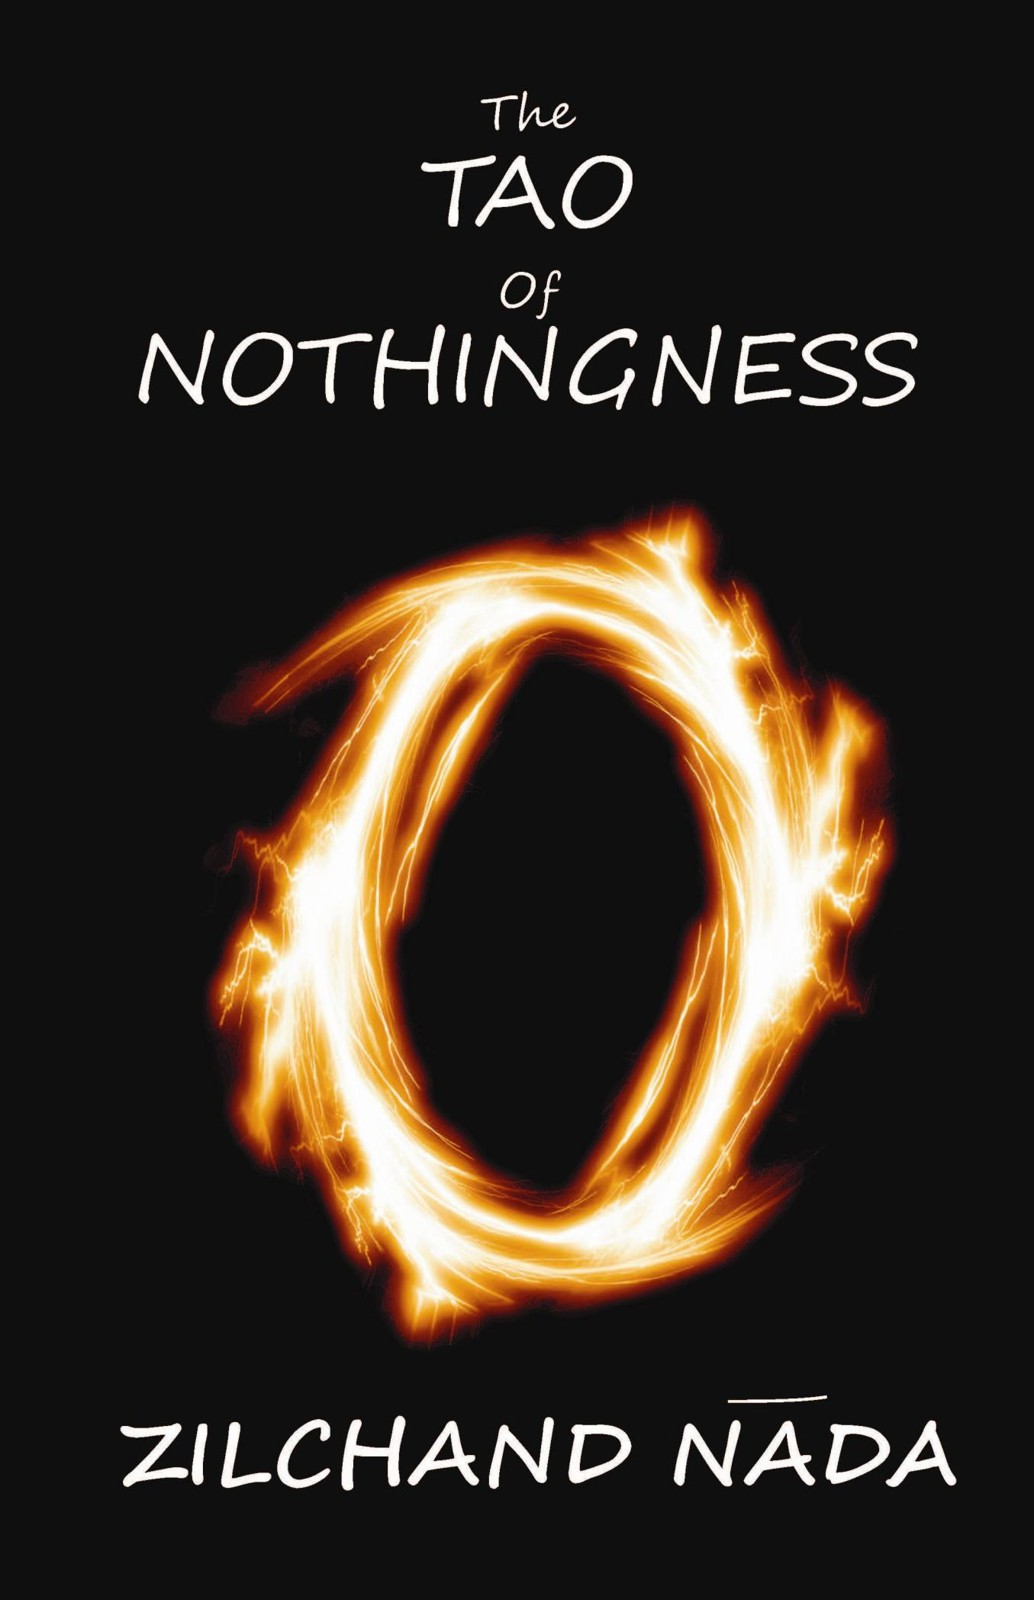 The Tao Of Nothingness